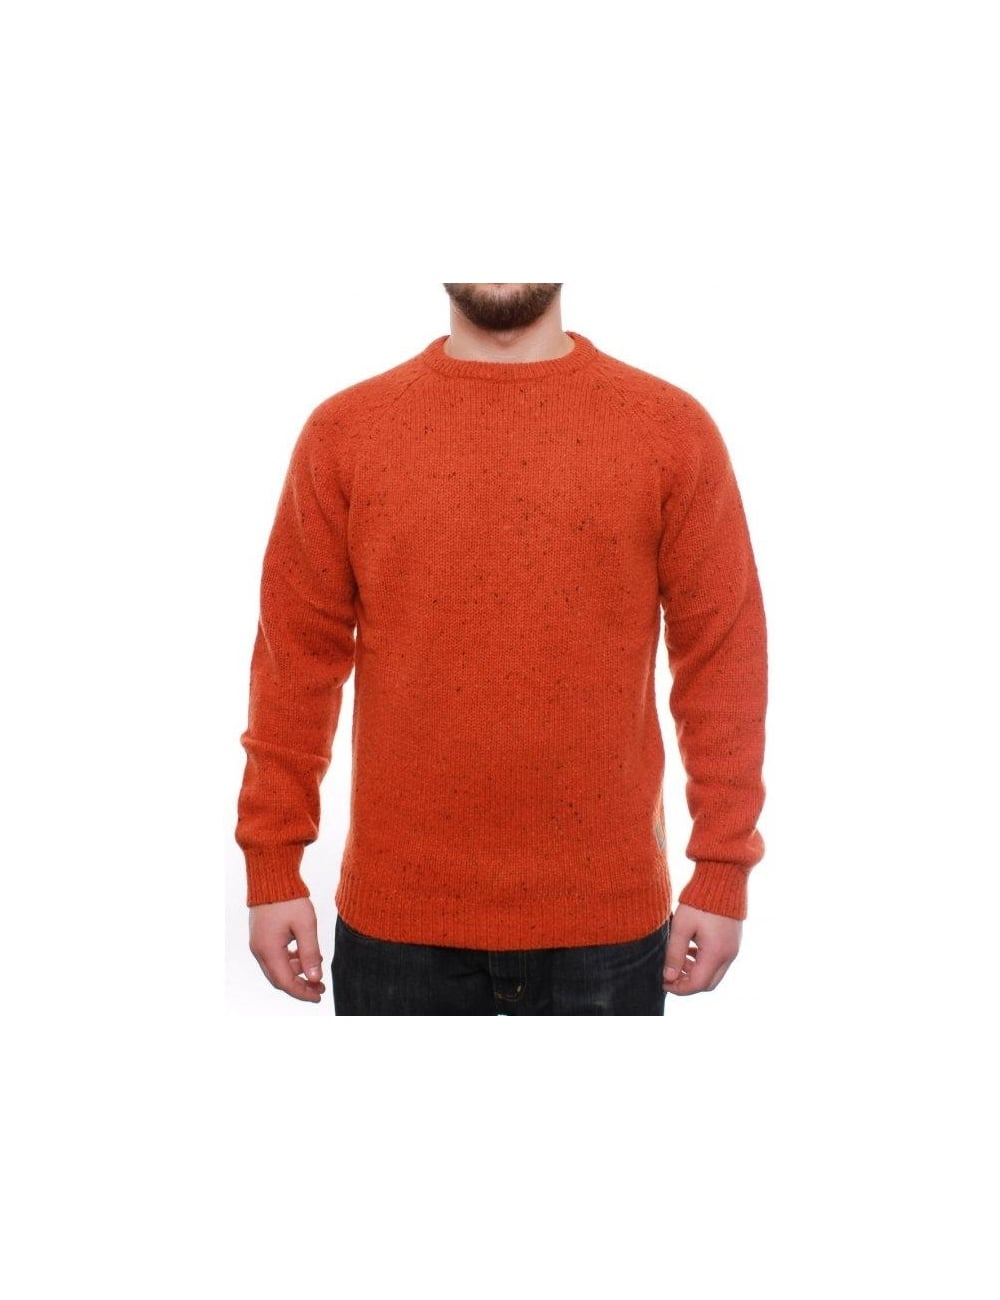 c2aedc7bdfd0e Carhartt WIP Anglistic Sweater - Cadmium Heather - Clothing from Fat ...